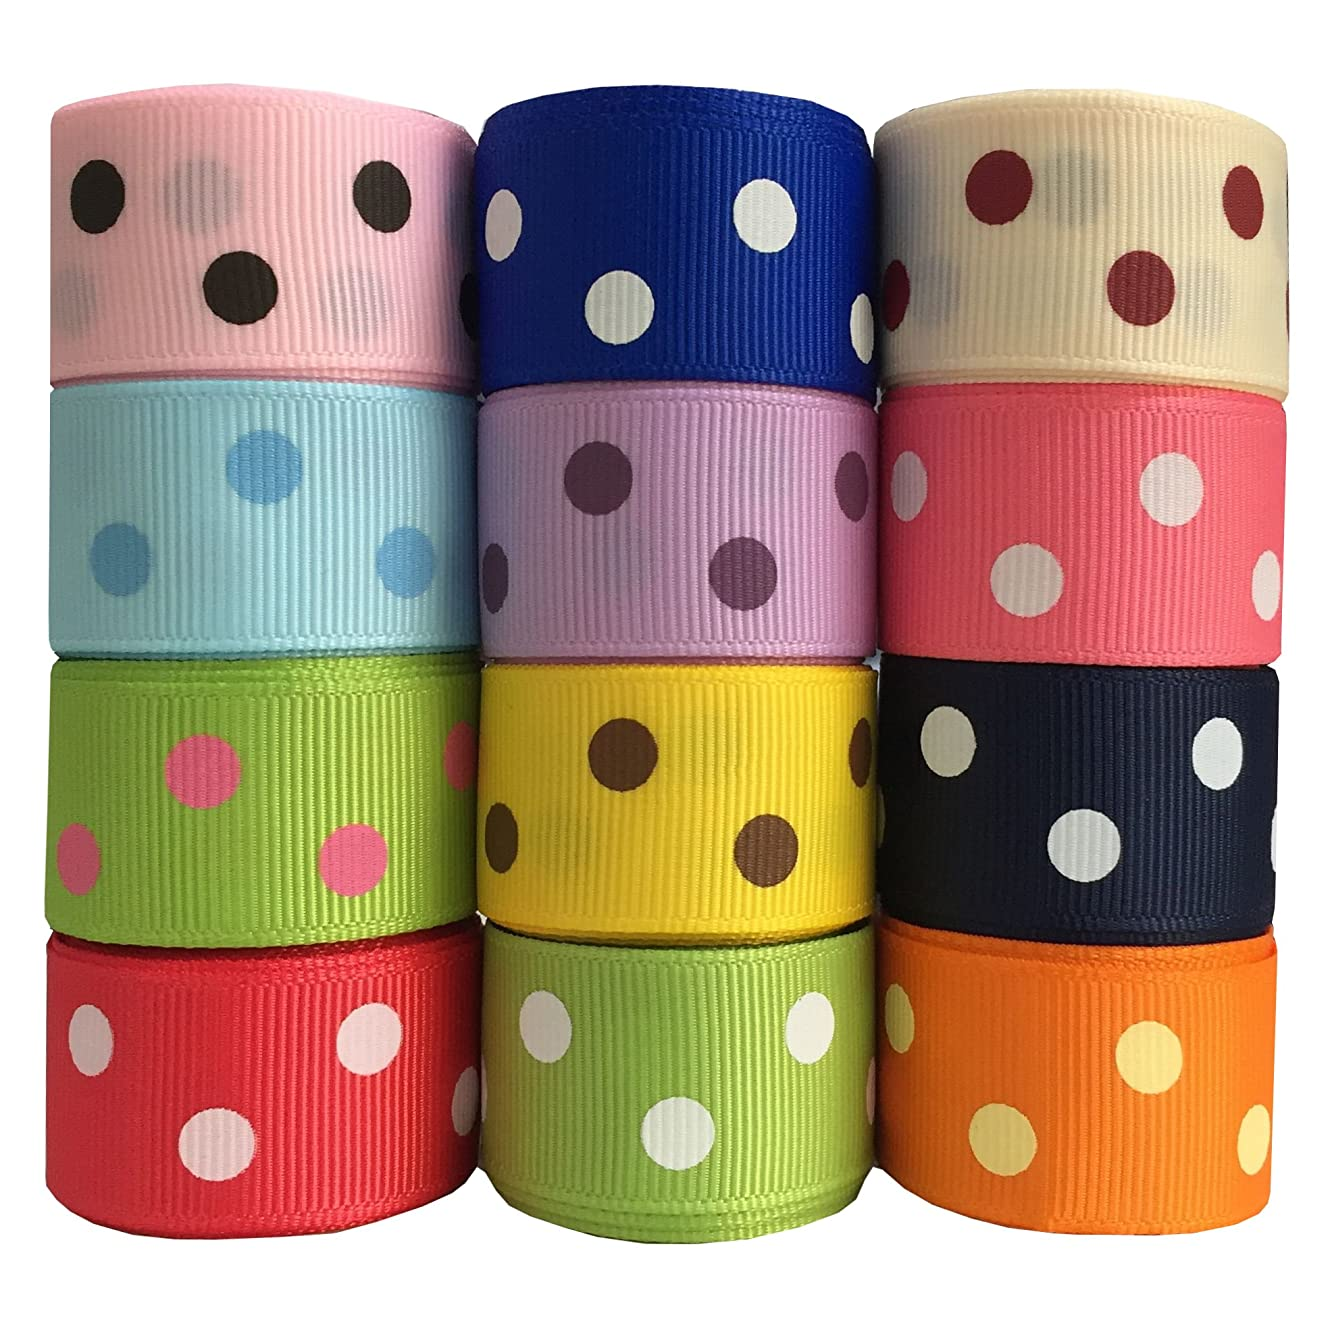 DUOQU 24 Yards 7/8 Inch Polka Dots Printed Grosgrain Ribbon (12 Colors, 2 Yard Each)